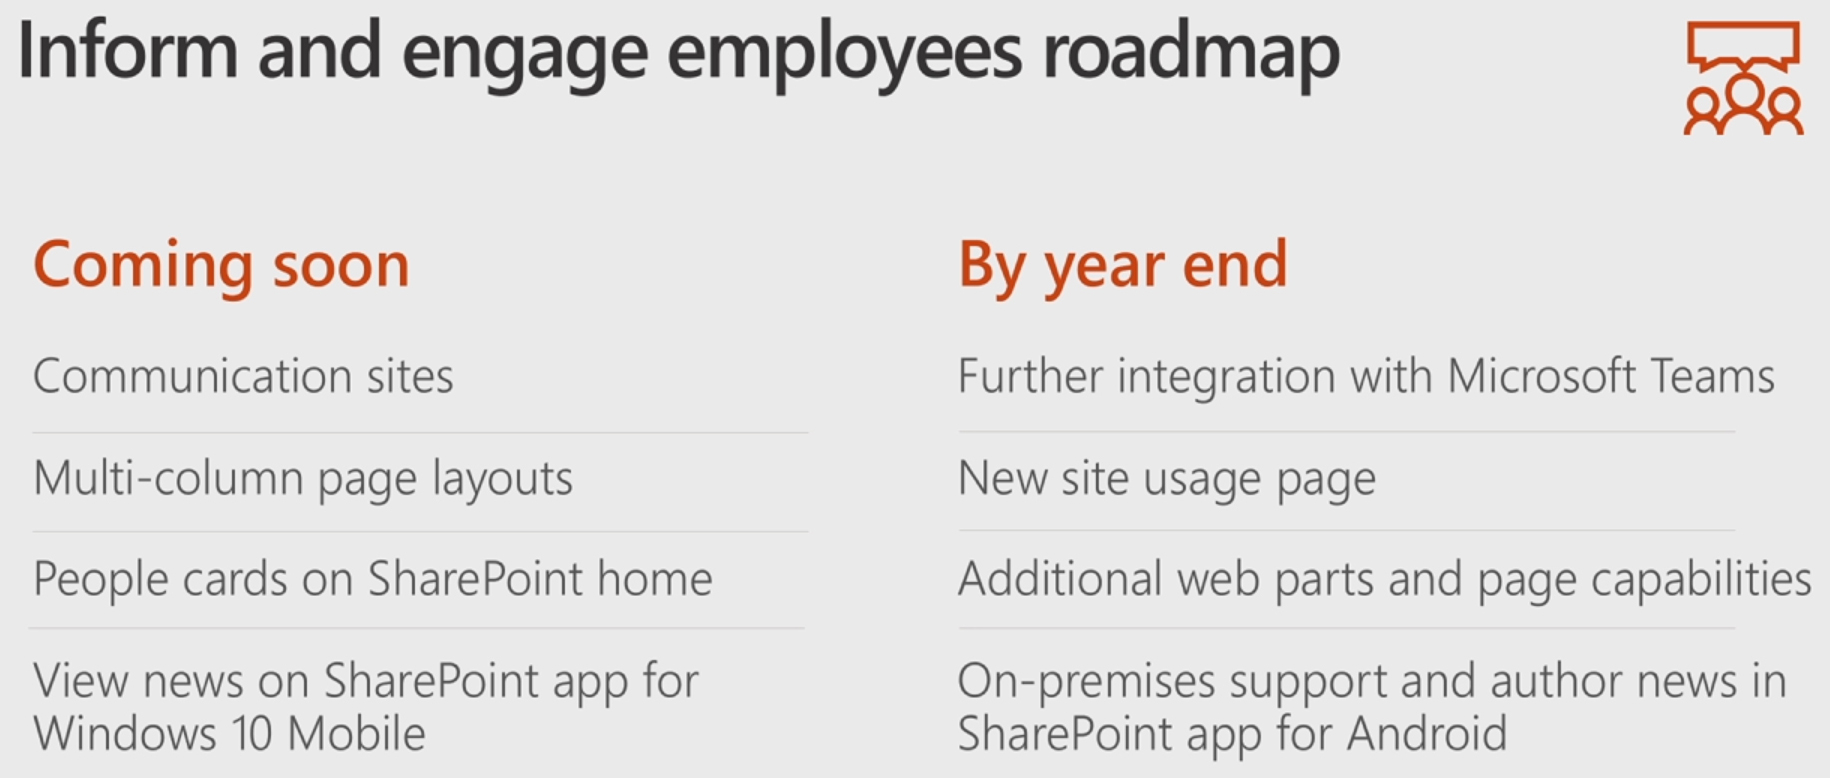 click on image for larger view sharepoint inform and engage roadmap improvements